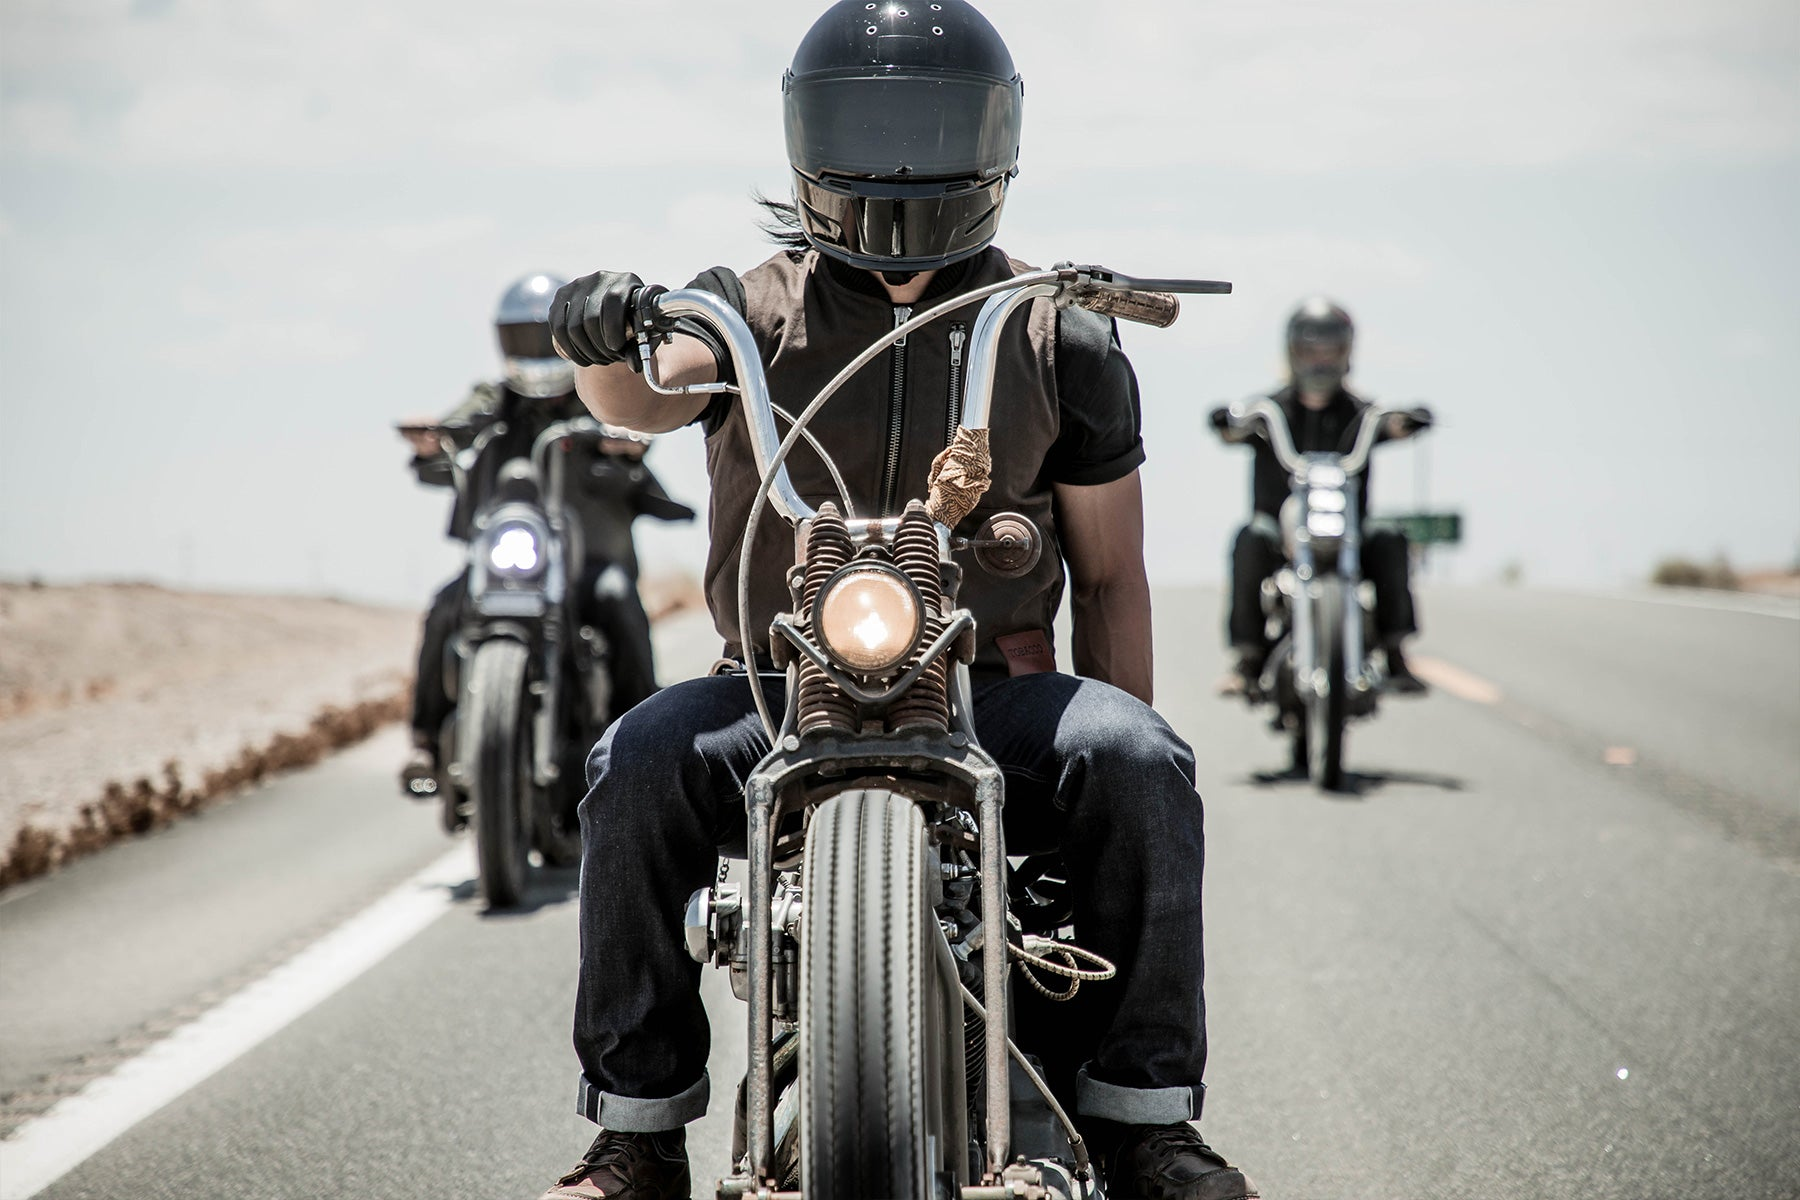 Mens motorcycle gear and clothing online at Moto EST Australia